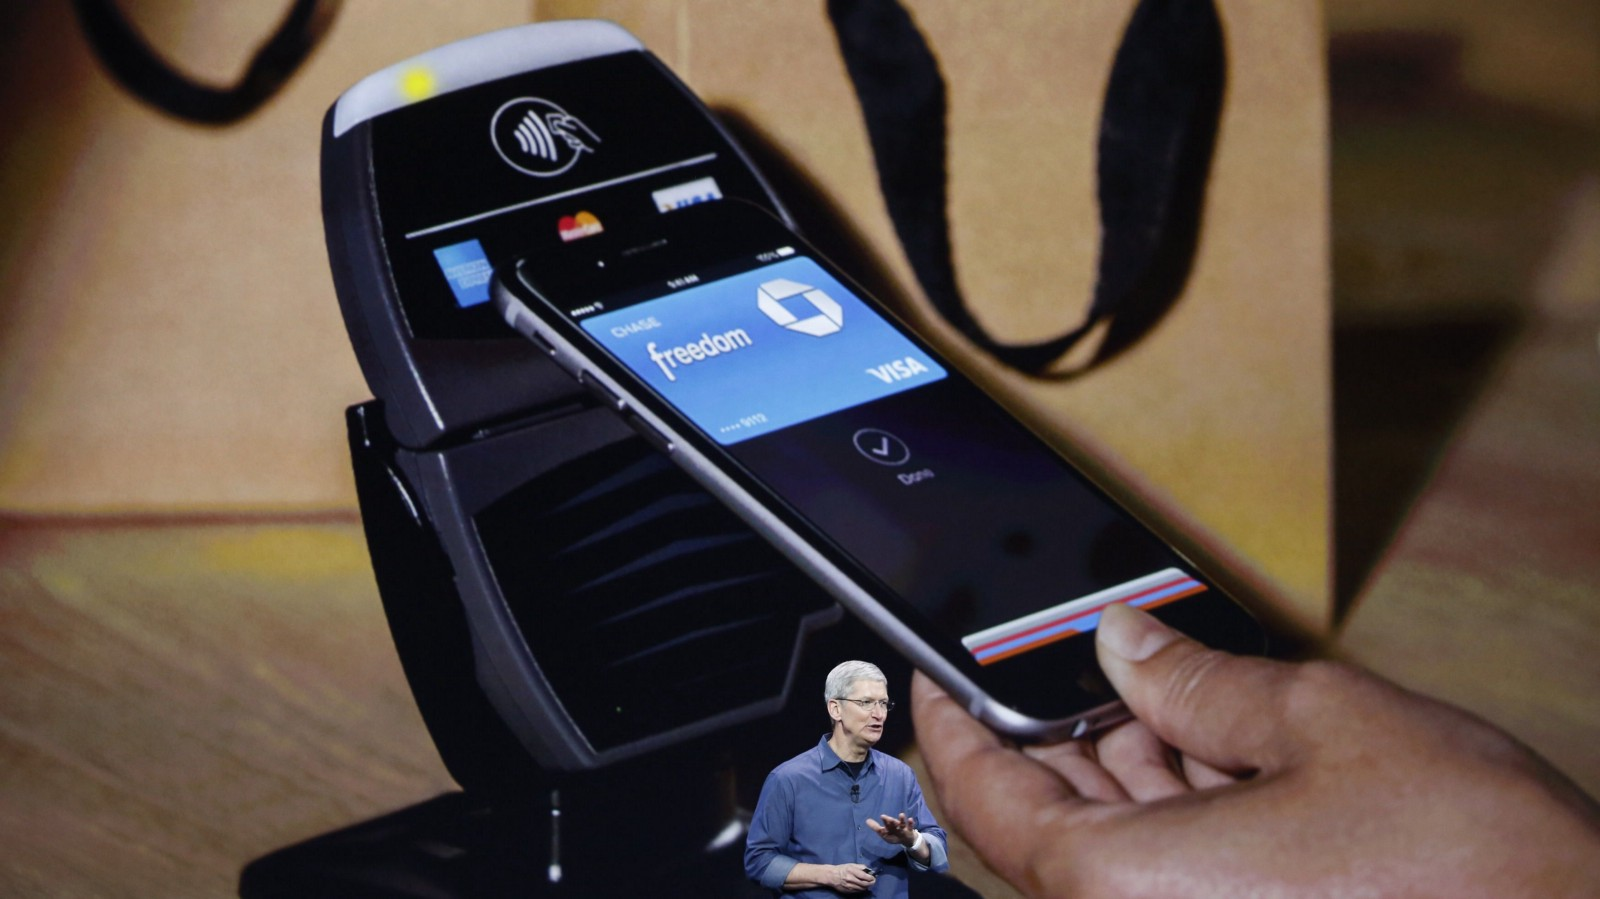 How to use apple pay on iPhone